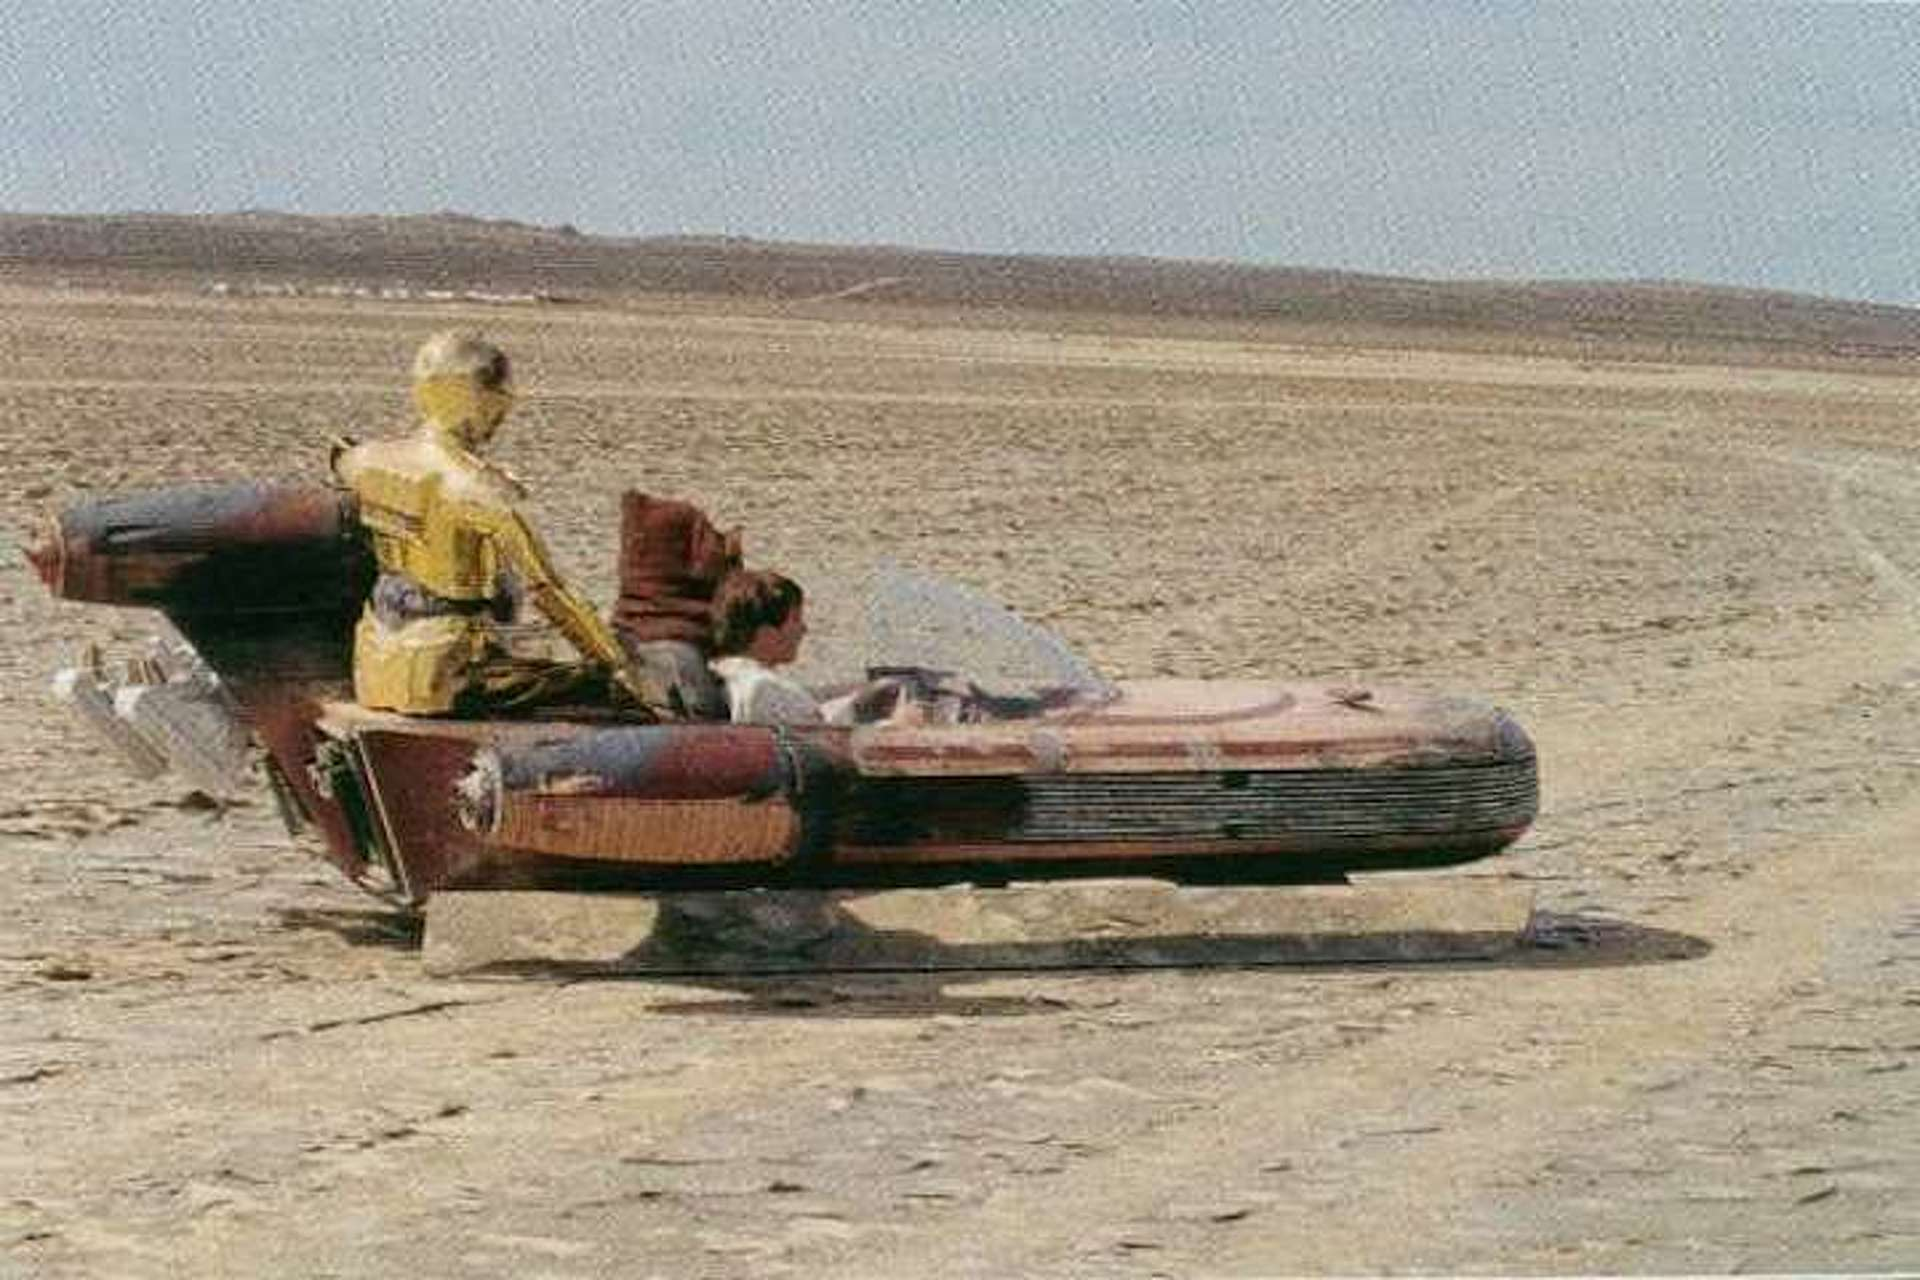 air methods helicopters with The Star Wars Landspeeder Will It Ever Really Exist on Another Day Another Fine Air Methods besides Cargo aircraft also Osha Requirements as well 10128309 in addition 1756.